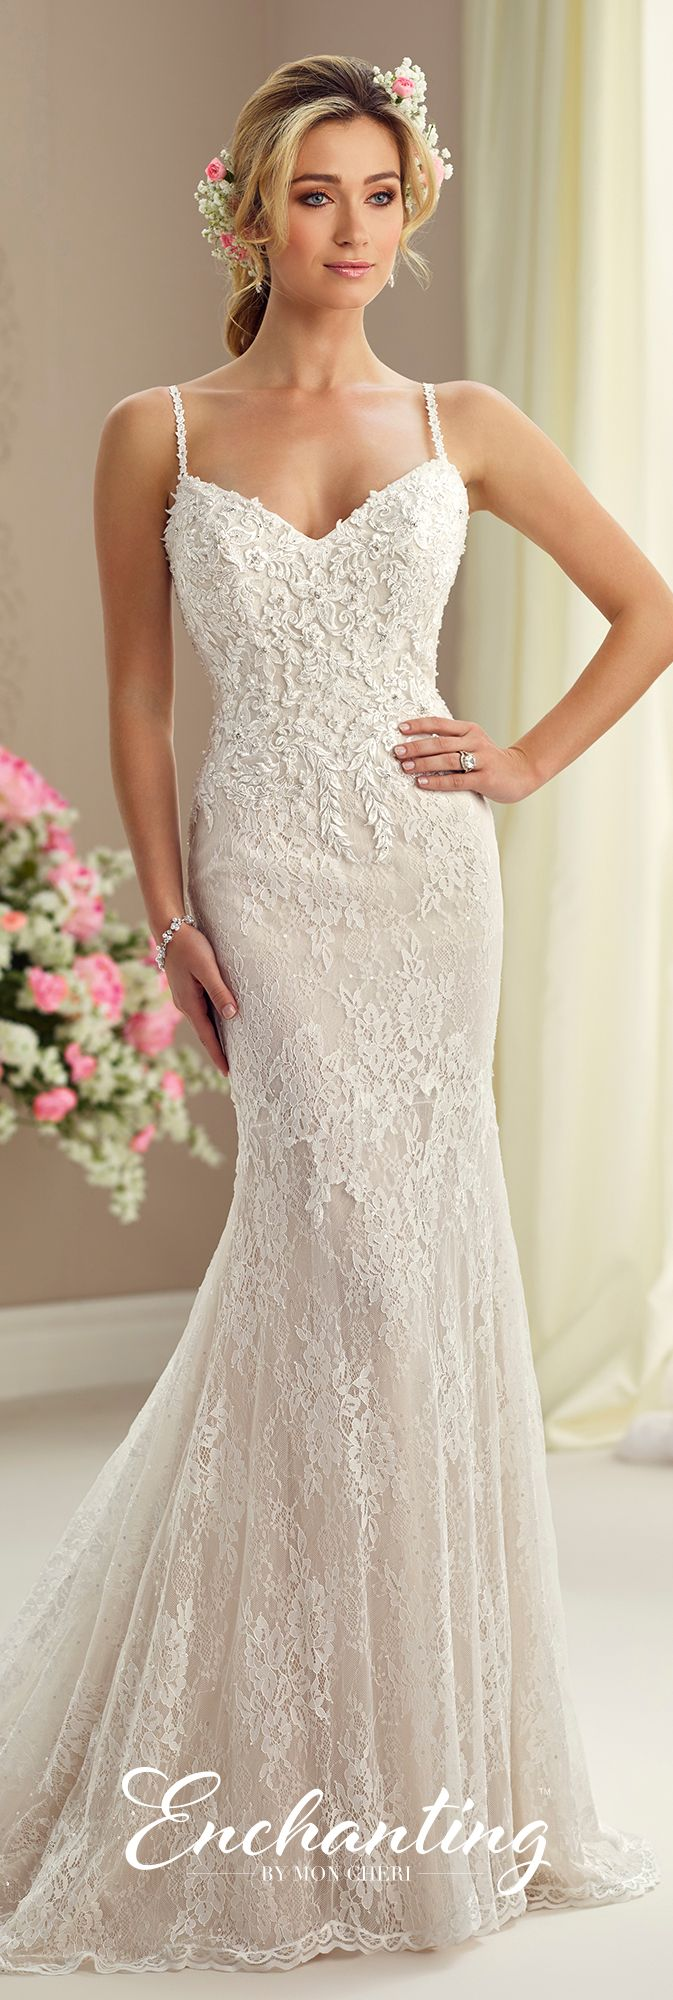 Allover Lace & Chiffon Fit & Flare Wedding Dress with a Train- 217107